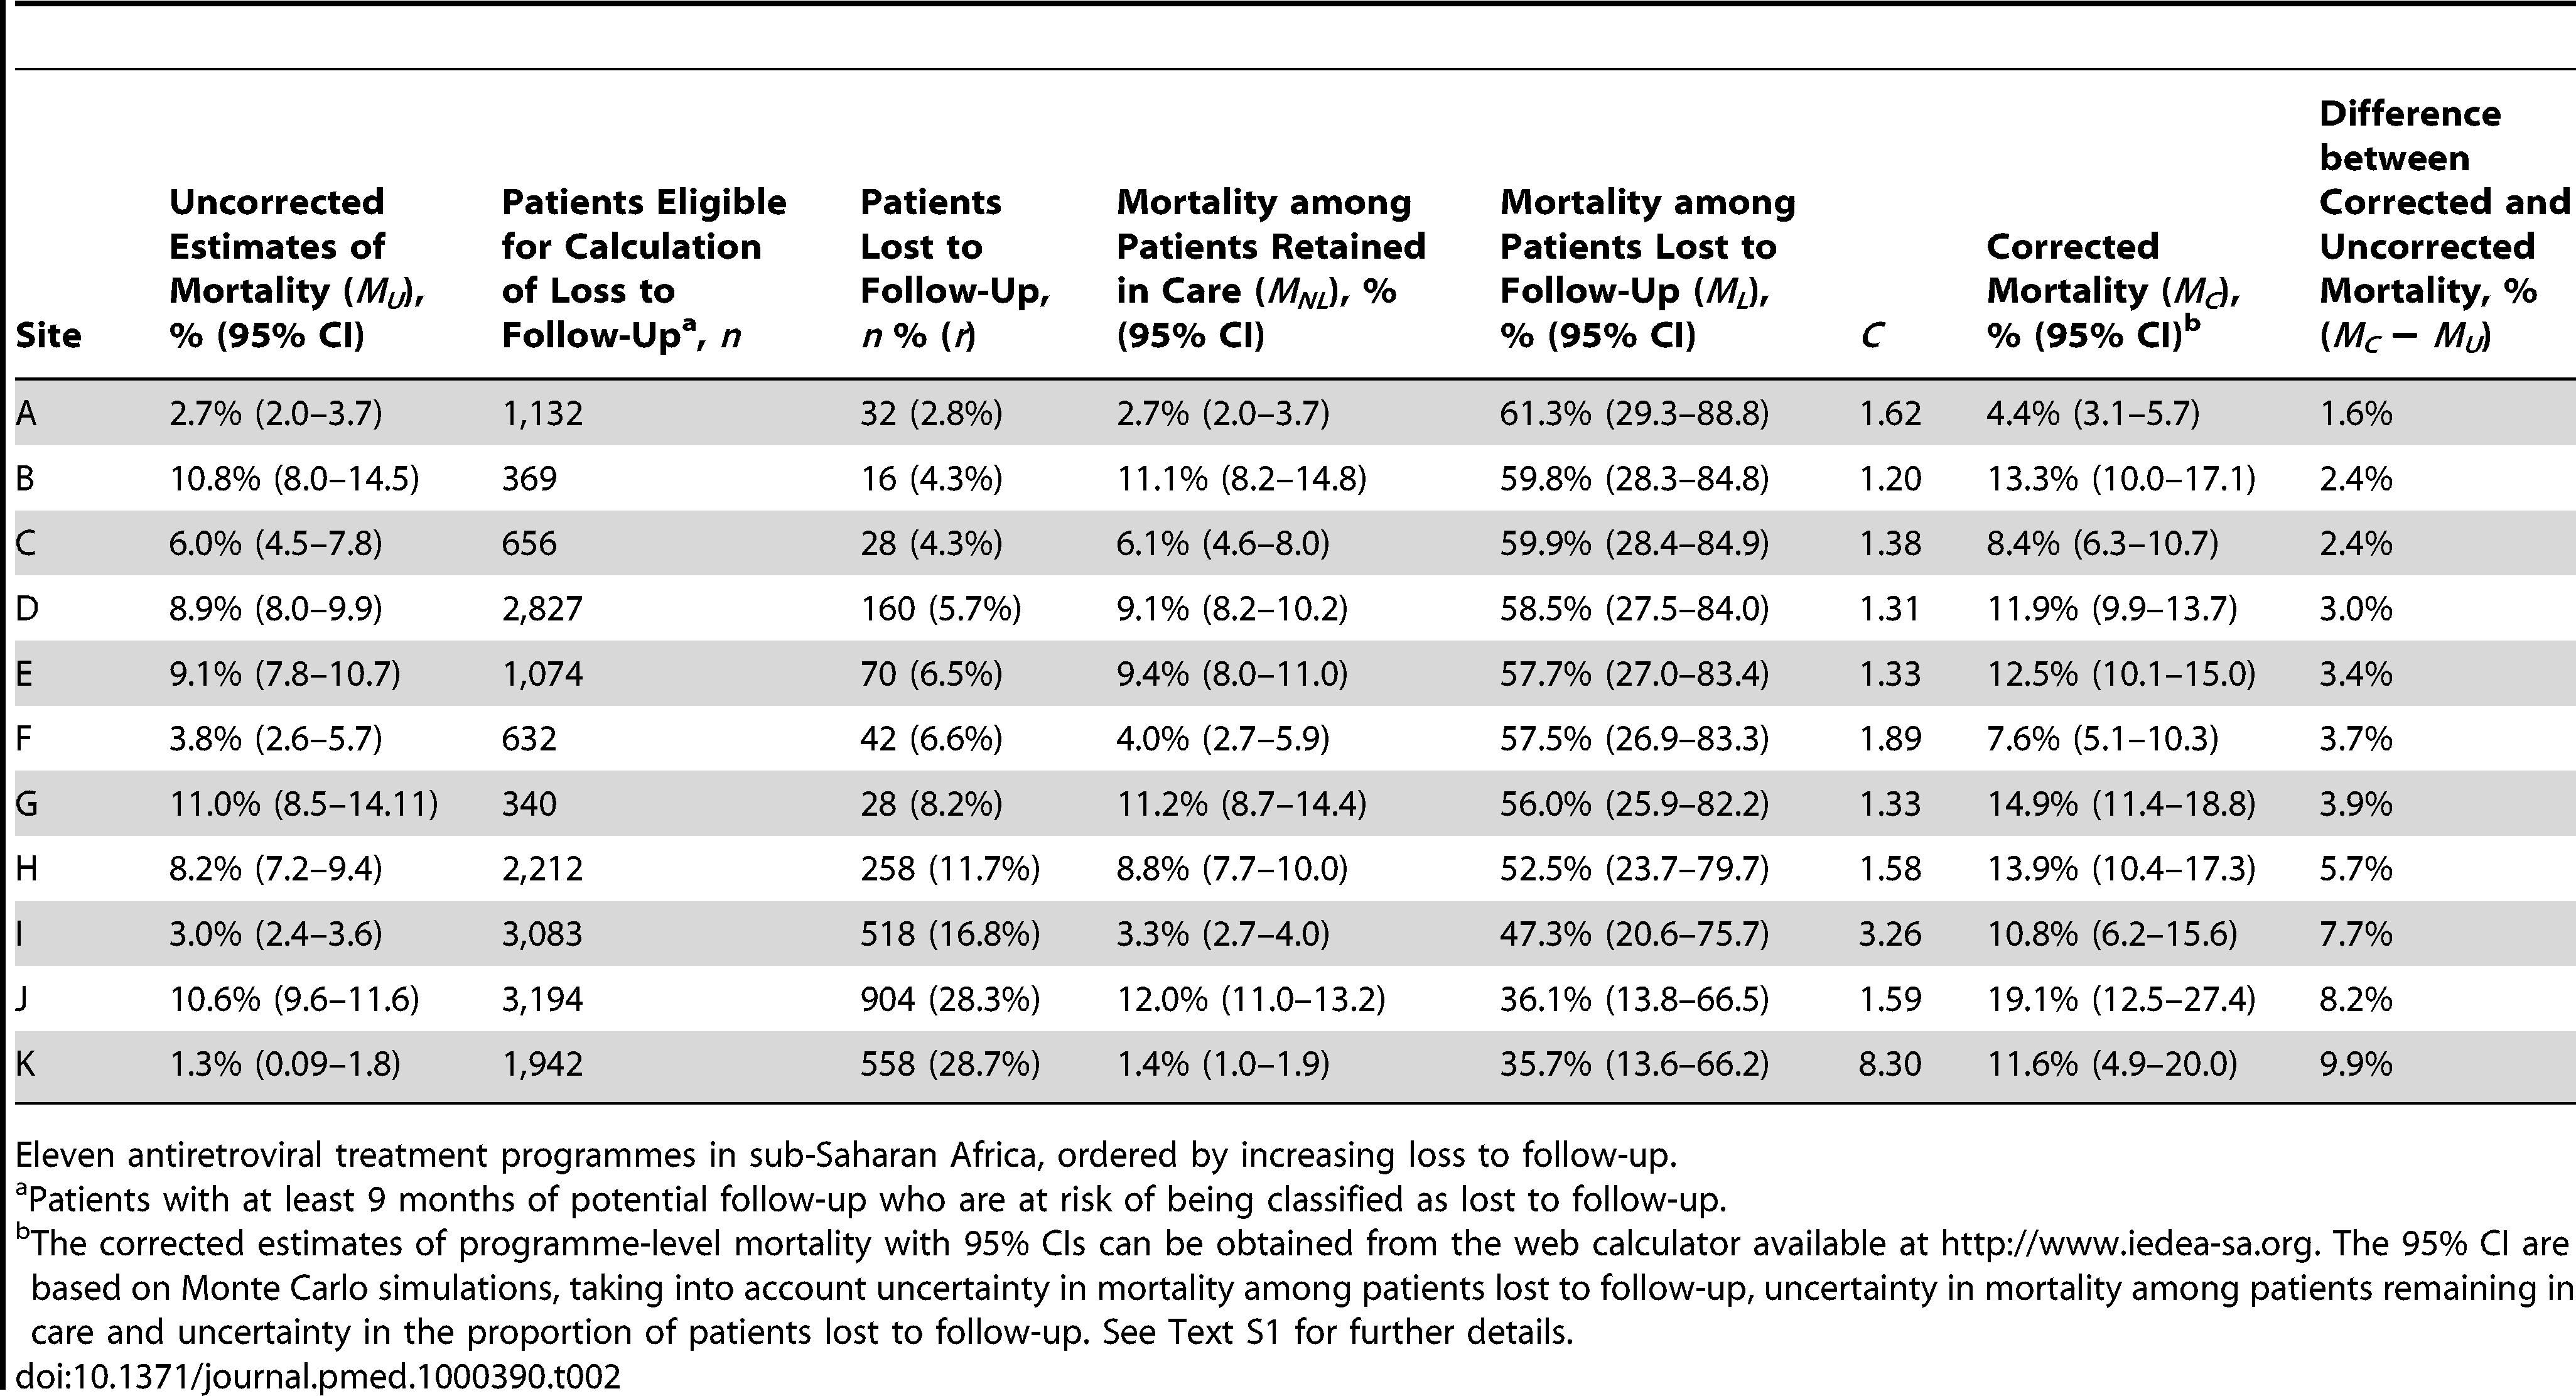 Uncorrected Kaplan-Meier estimates of programme-level mortality at 1 year for all patients starting ART, number of patients lost to follow-up, mortality estimates for patients retained in care, predicted mortality among patients lost to follow-up, correction factor <i>C</i> and corrected programme-level mortality at 1 year.